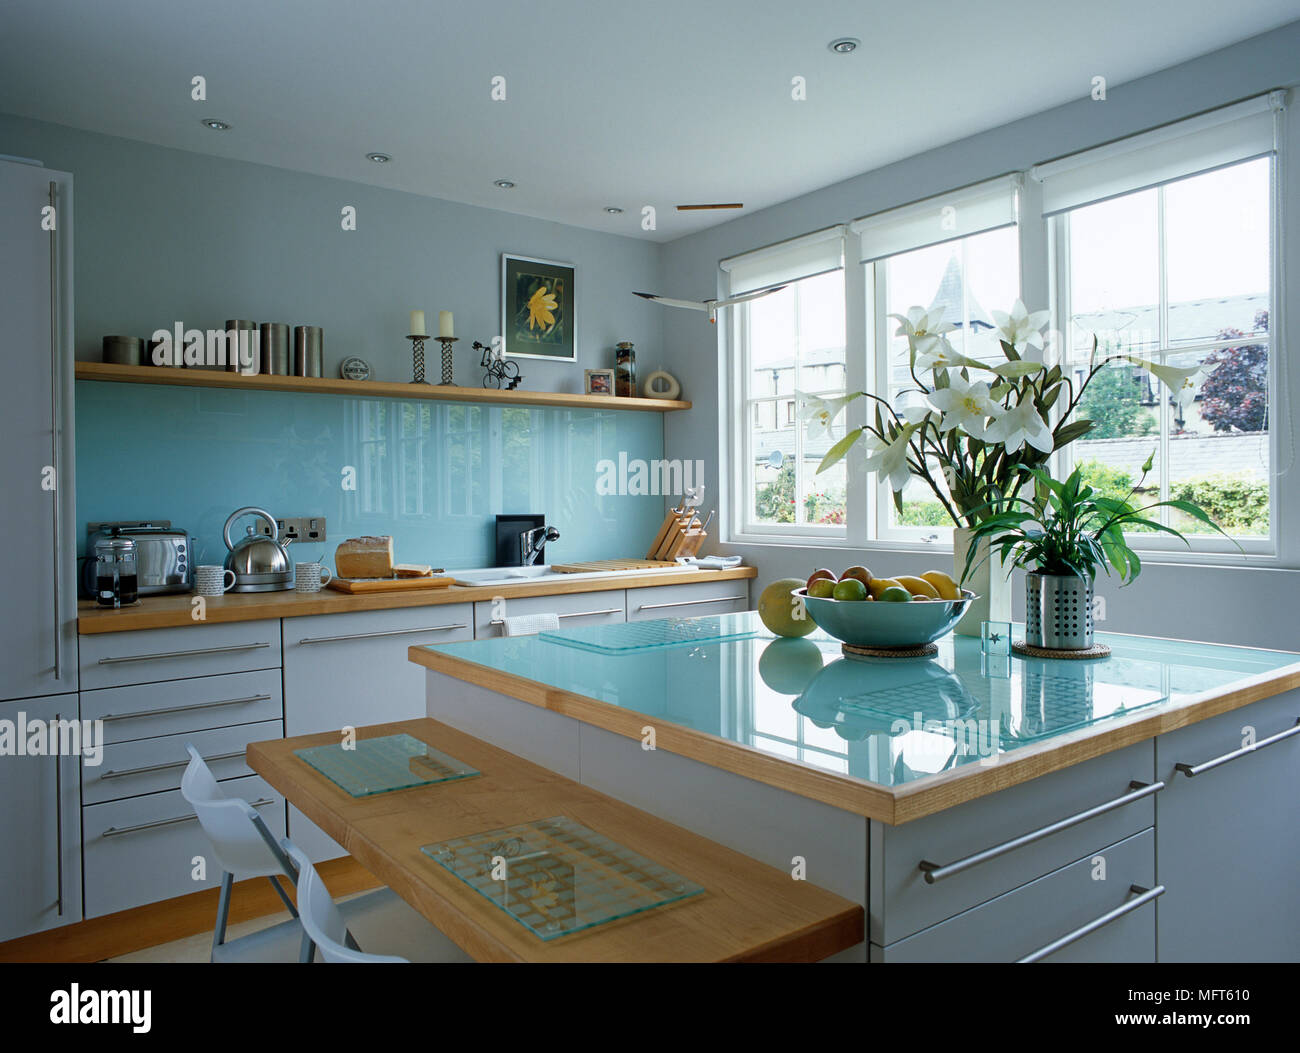 Central island unit with blue glass worktop and breakfast bar in ...